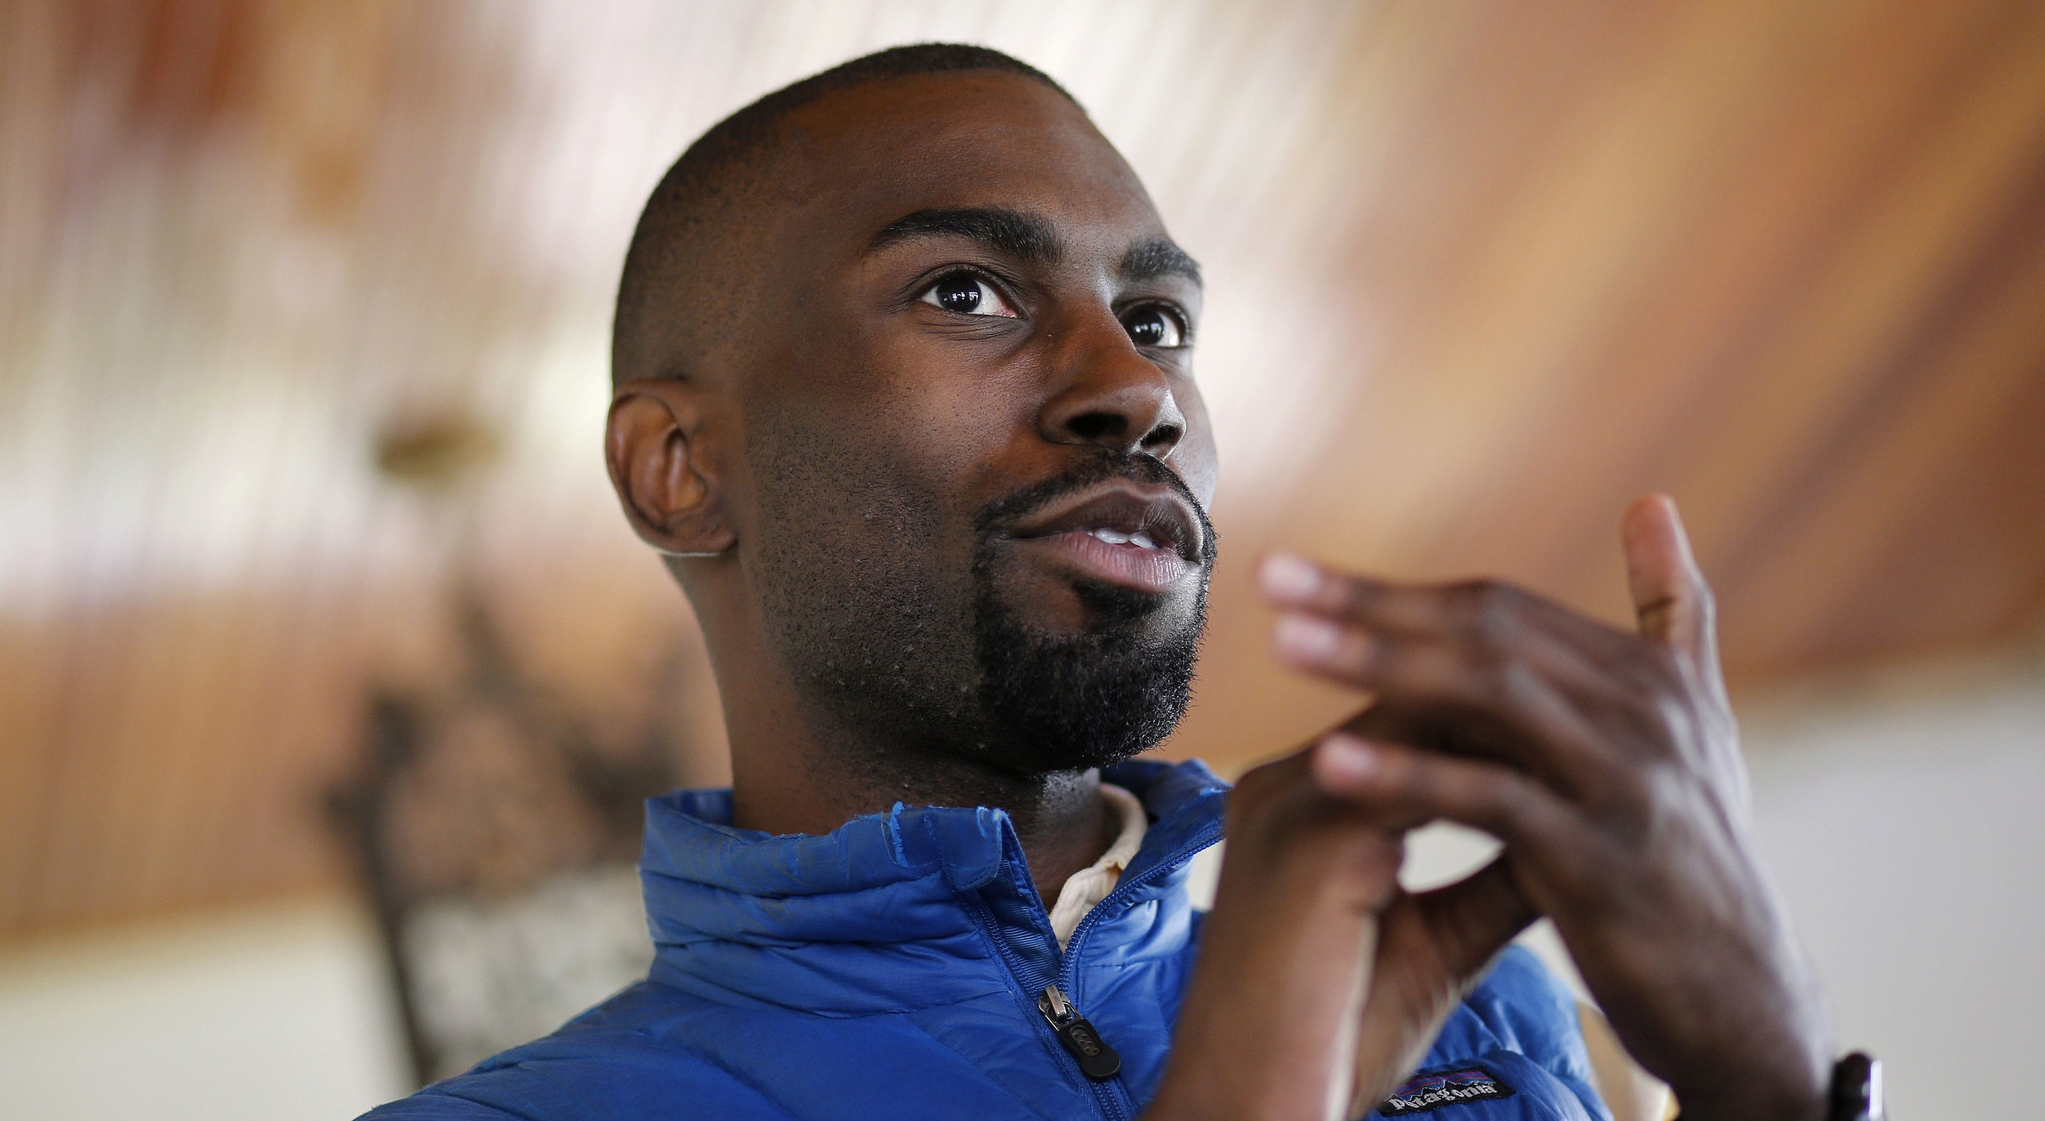 bal-black-lives-matter-activist-deray-mckesson-s-twitter-hacked-friday-morning-20160610.jpg